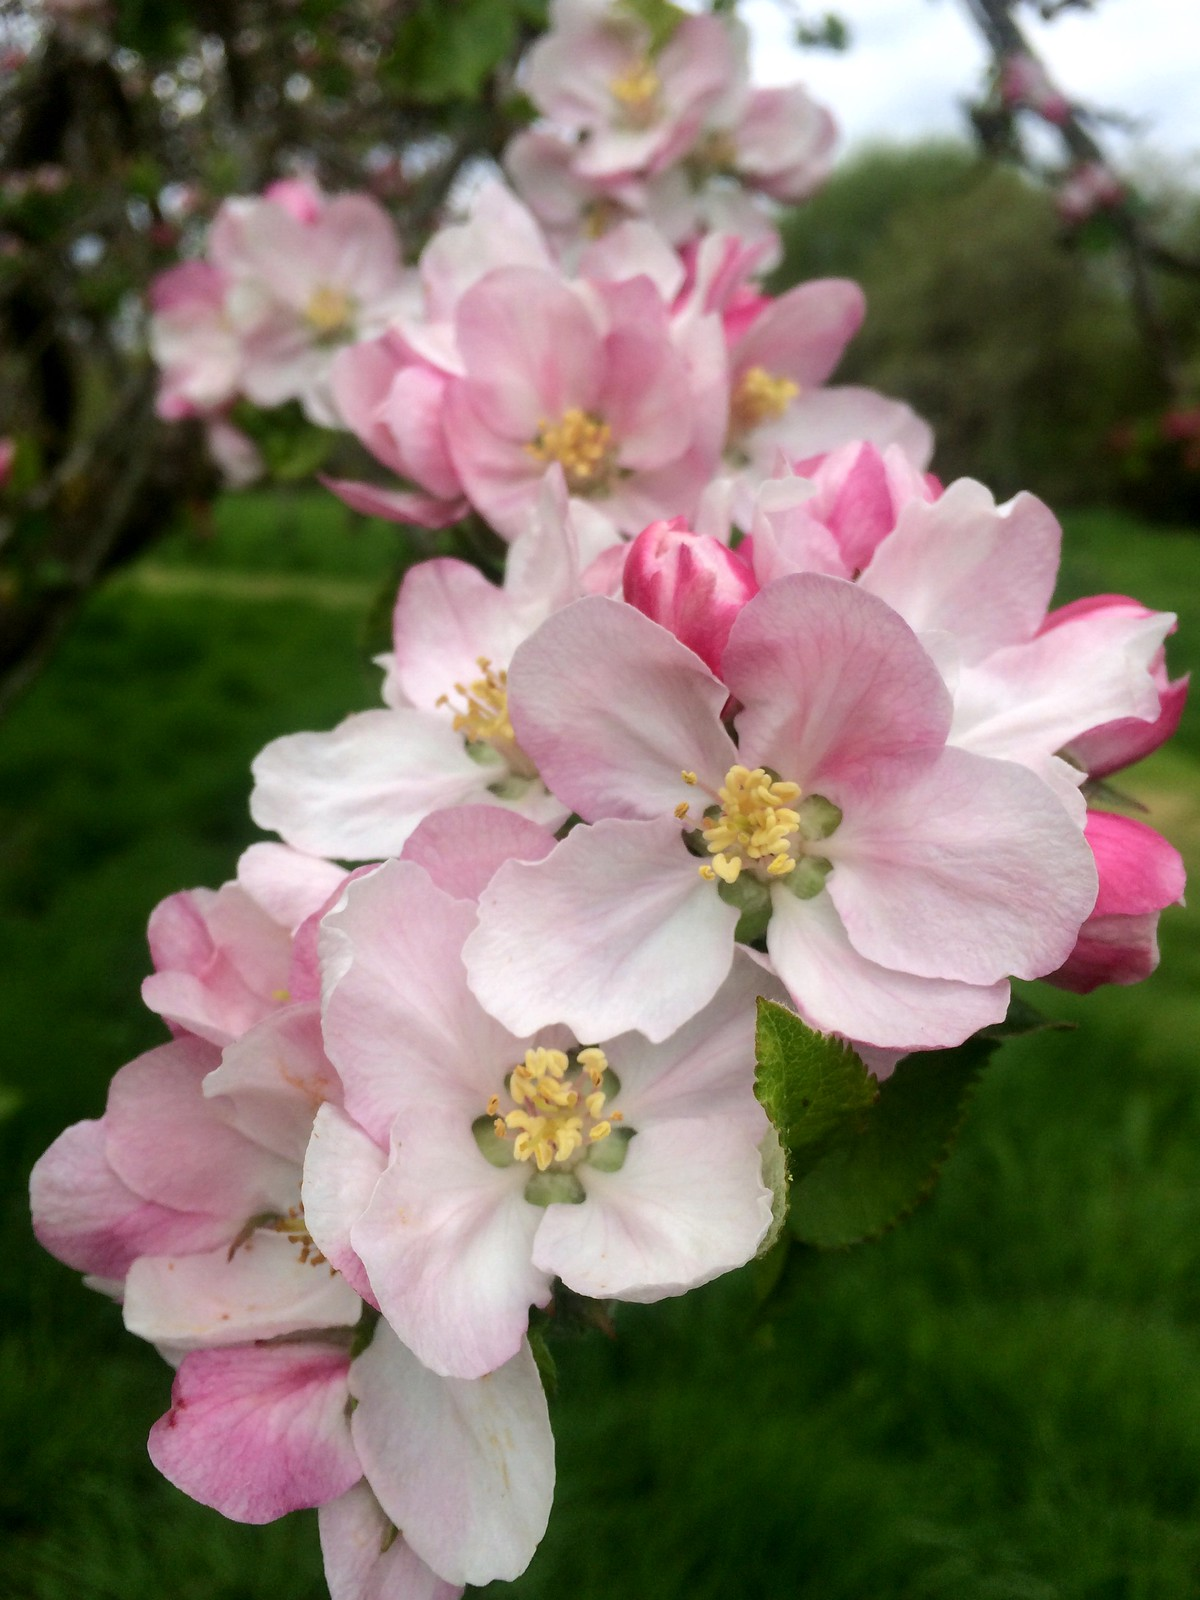 April 17, 2017: Uckfield to Lewes Apple tree blossom